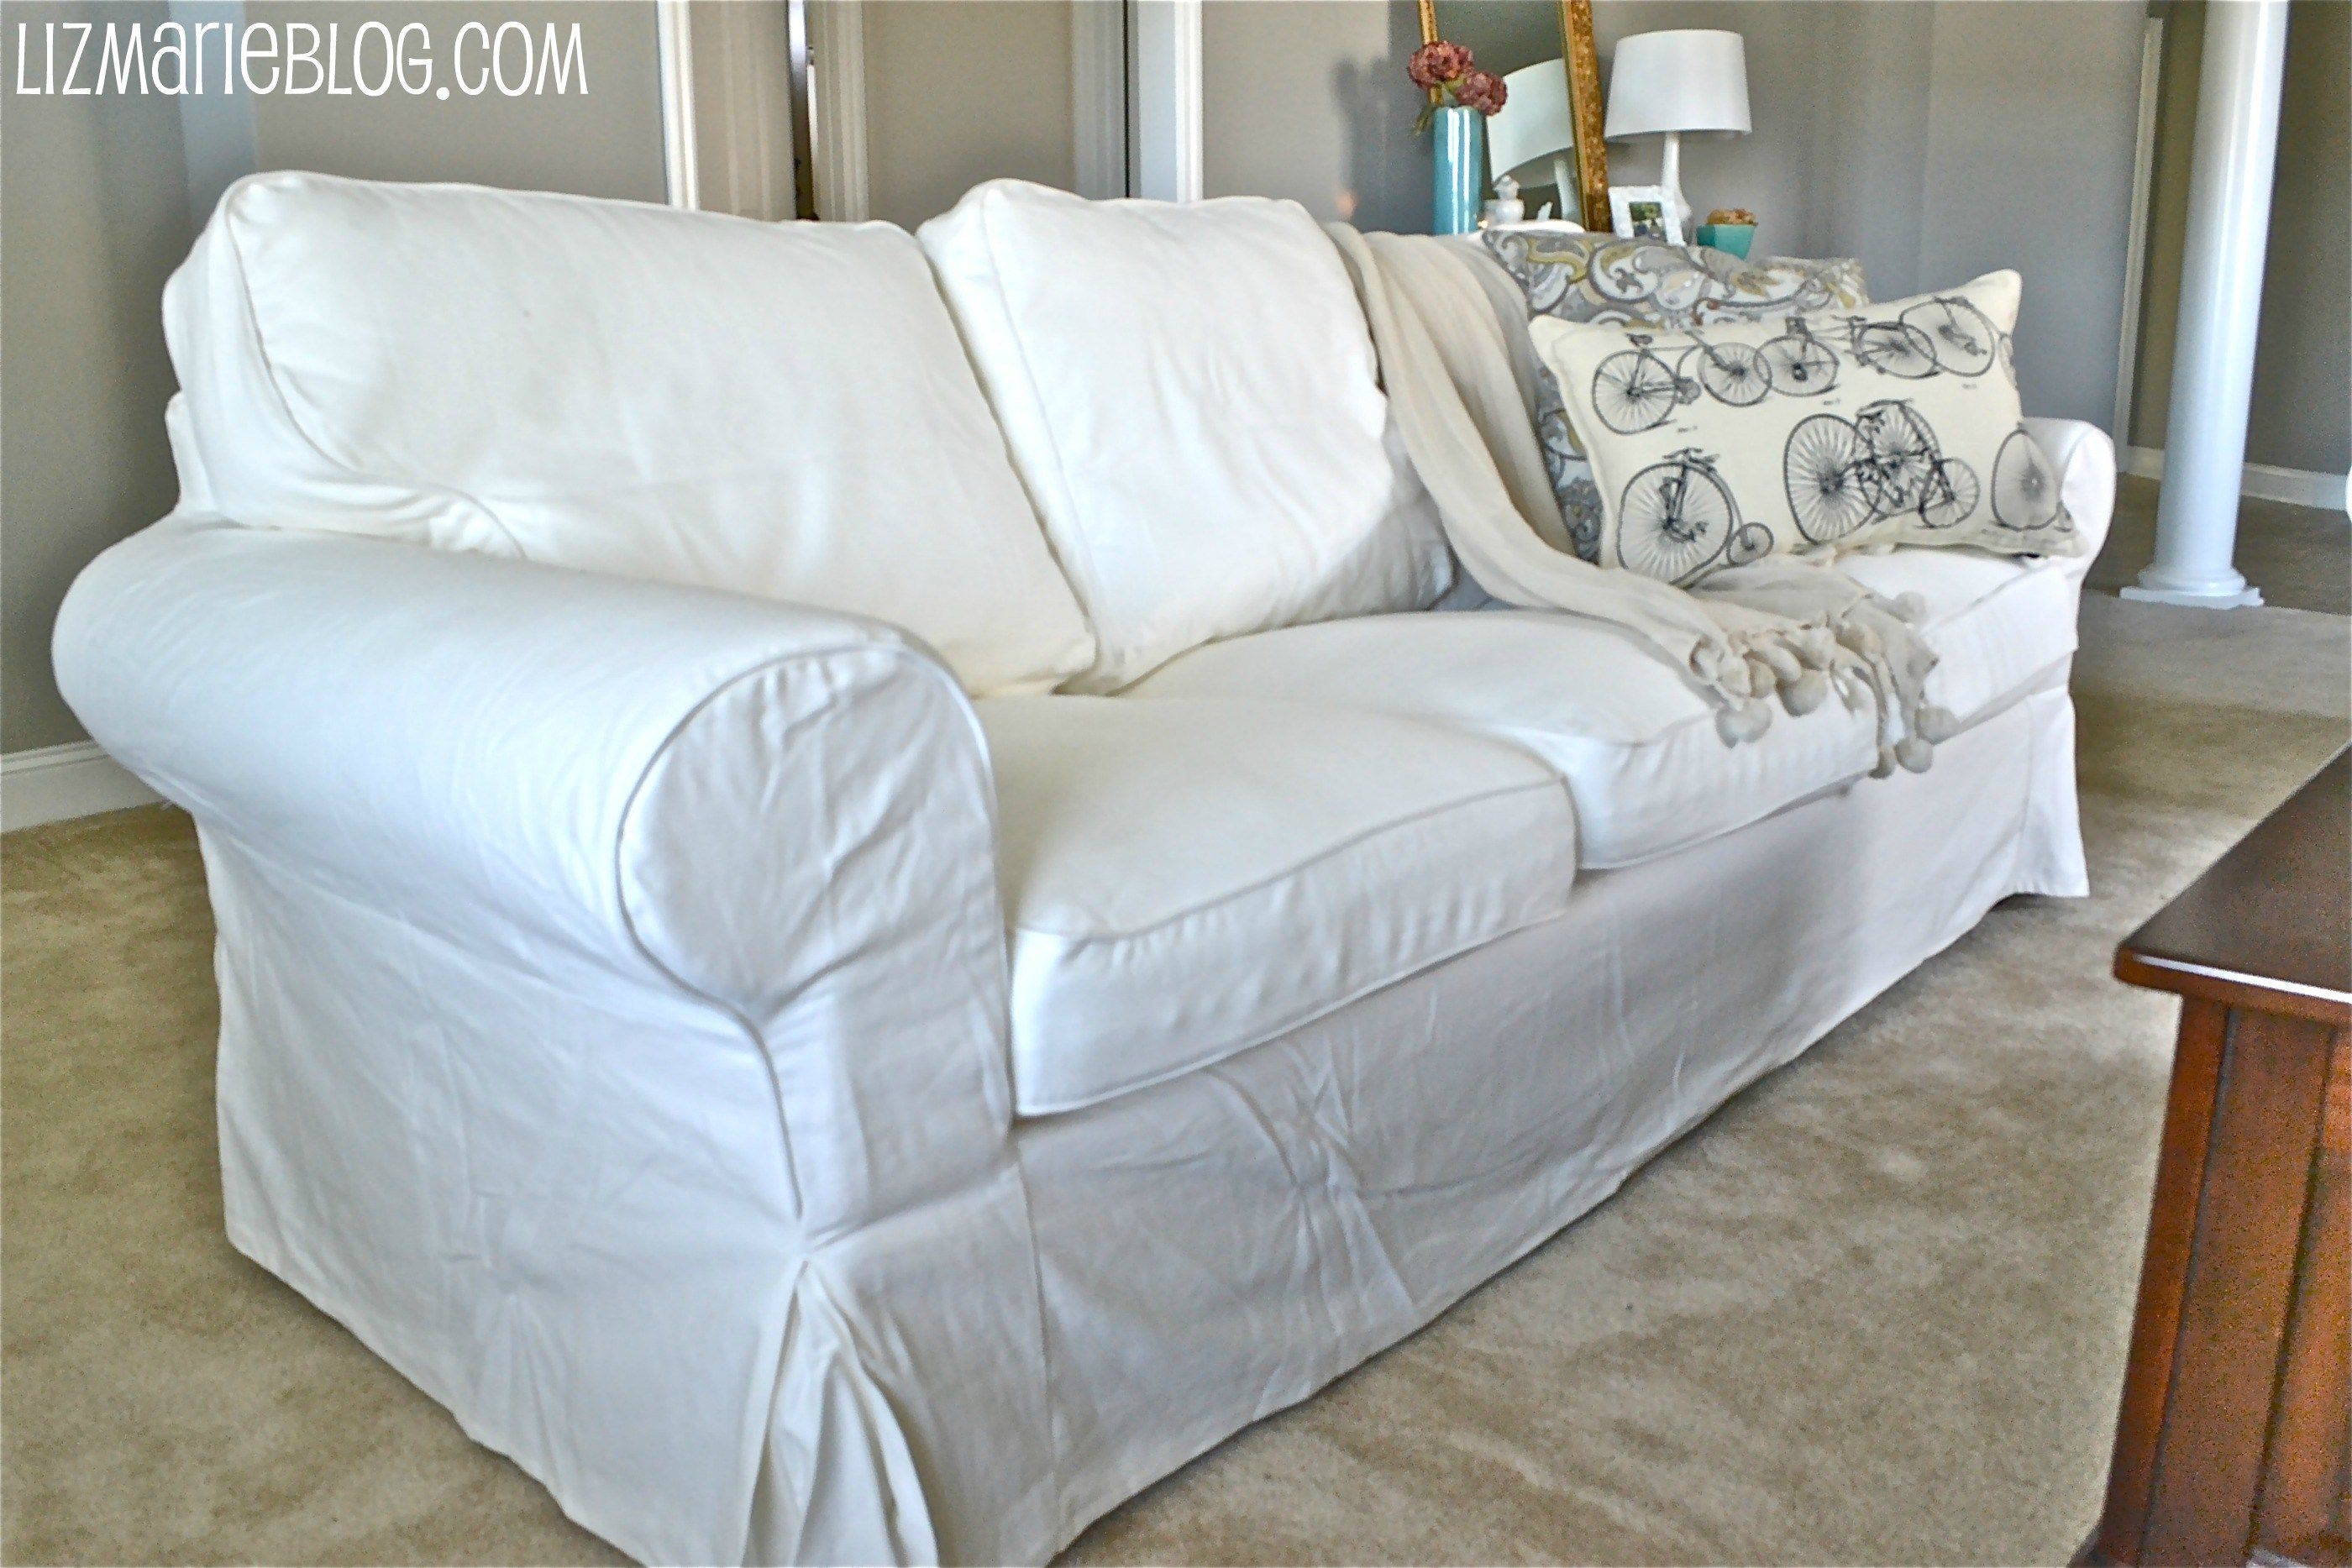 leather sofa covers ikea sage sleeper new white slipcover couches pinterest texas living rooms